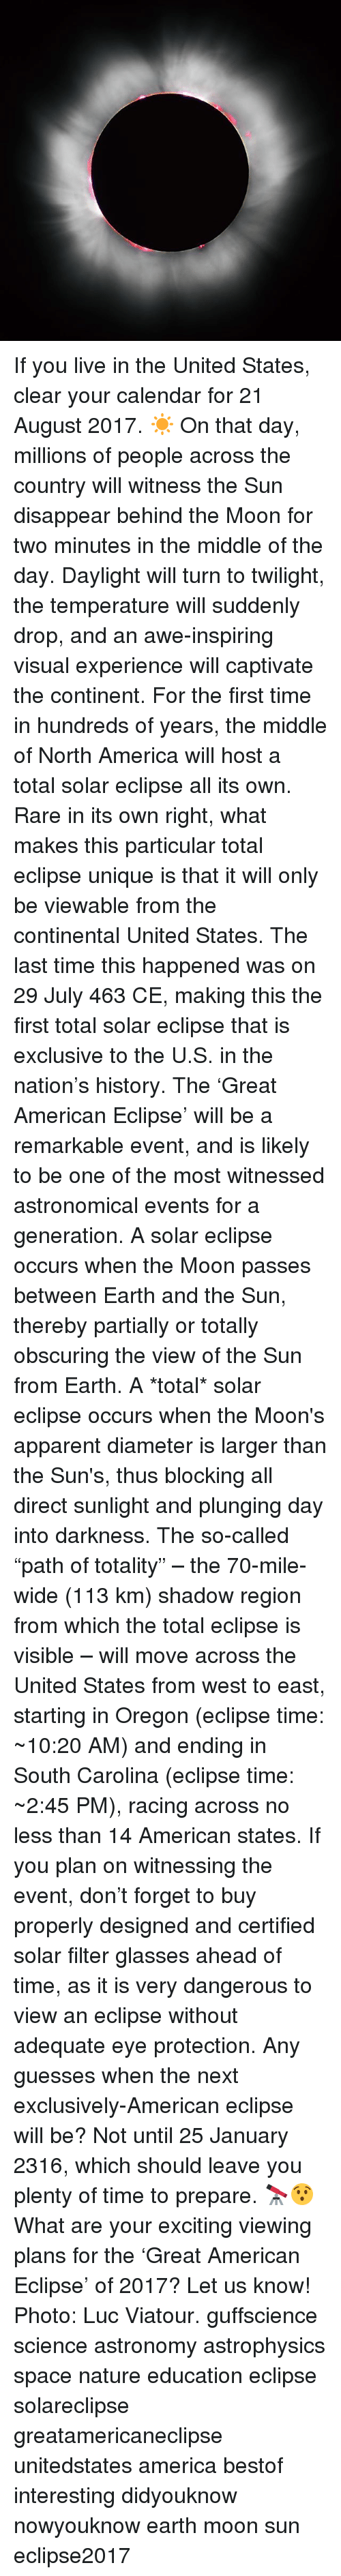 """America, Memes, and American: If you live in the United States, clear your calendar for 21 August 2017. ☀️ On that day, millions of people across the country will witness the Sun disappear behind the Moon for two minutes in the middle of the day. Daylight will turn to twilight, the temperature will suddenly drop, and an awe-inspiring visual experience will captivate the continent. For the first time in hundreds of years, the middle of North America will host a total solar eclipse all its own. Rare in its own right, what makes this particular total eclipse unique is that it will only be viewable from the continental United States. The last time this happened was on 29 July 463 CE, making this the first total solar eclipse that is exclusive to the U.S. in the nation's history. The 'Great American Eclipse' will be a remarkable event, and is likely to be one of the most witnessed astronomical events for a generation. A solar eclipse occurs when the Moon passes between Earth and the Sun, thereby partially or totally obscuring the view of the Sun from Earth. A *total* solar eclipse occurs when the Moon's apparent diameter is larger than the Sun's, thus blocking all direct sunlight and plunging day into darkness. The so-called """"path of totality"""" – the 70-mile-wide (113 km) shadow region from which the total eclipse is visible – will move across the United States from west to east, starting in Oregon (eclipse time: ~10:20 AM) and ending in South Carolina (eclipse time: ~2:45 PM), racing across no less than 14 American states. If you plan on witnessing the event, don't forget to buy properly designed and certified solar filter glasses ahead of time, as it is very dangerous to view an eclipse without adequate eye protection. Any guesses when the next exclusively-American eclipse will be? Not until 25 January 2316, which should leave you plenty of time to prepare. 🔭😯 What are your exciting viewing plans for the 'Great American Eclipse' of 2017? Let us know! Photo: Luc Viatour."""